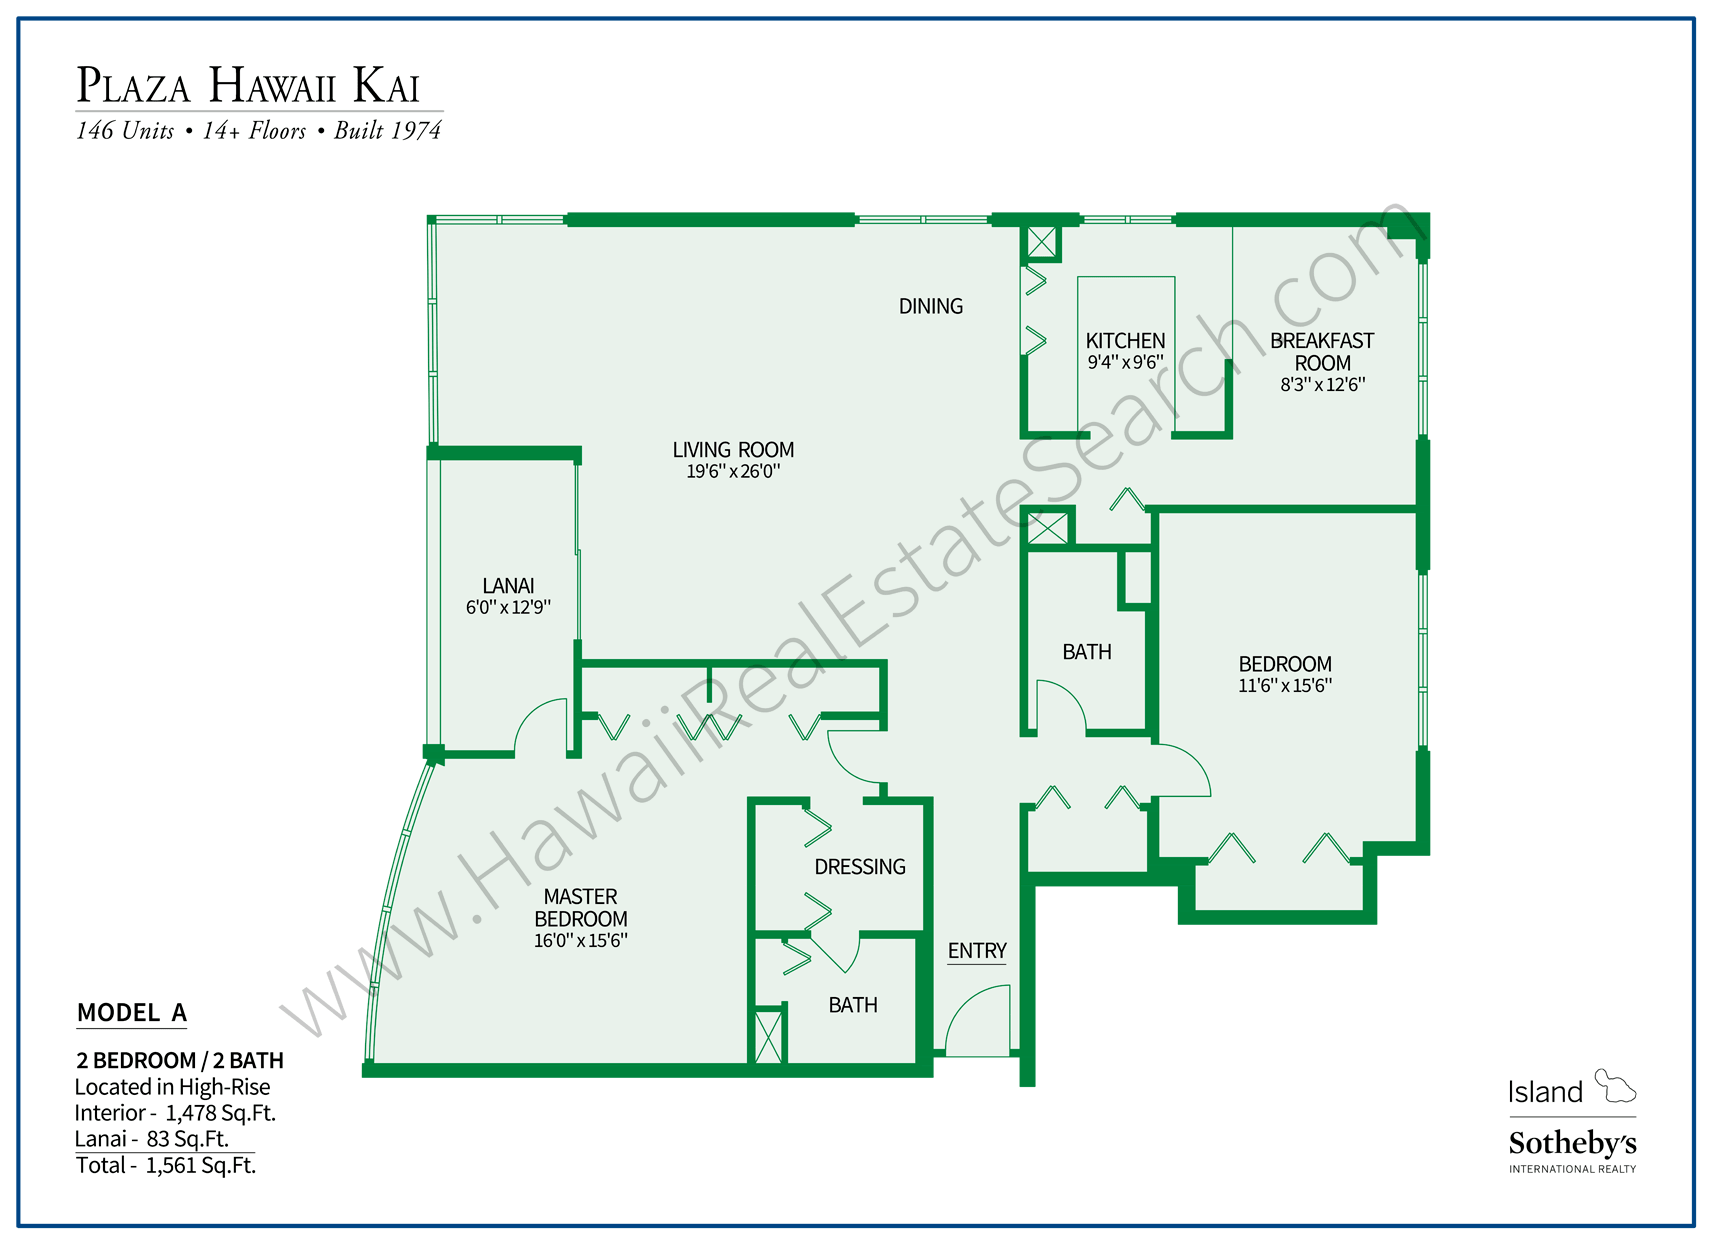 Plaza Hawaii Kai Floor Plan A